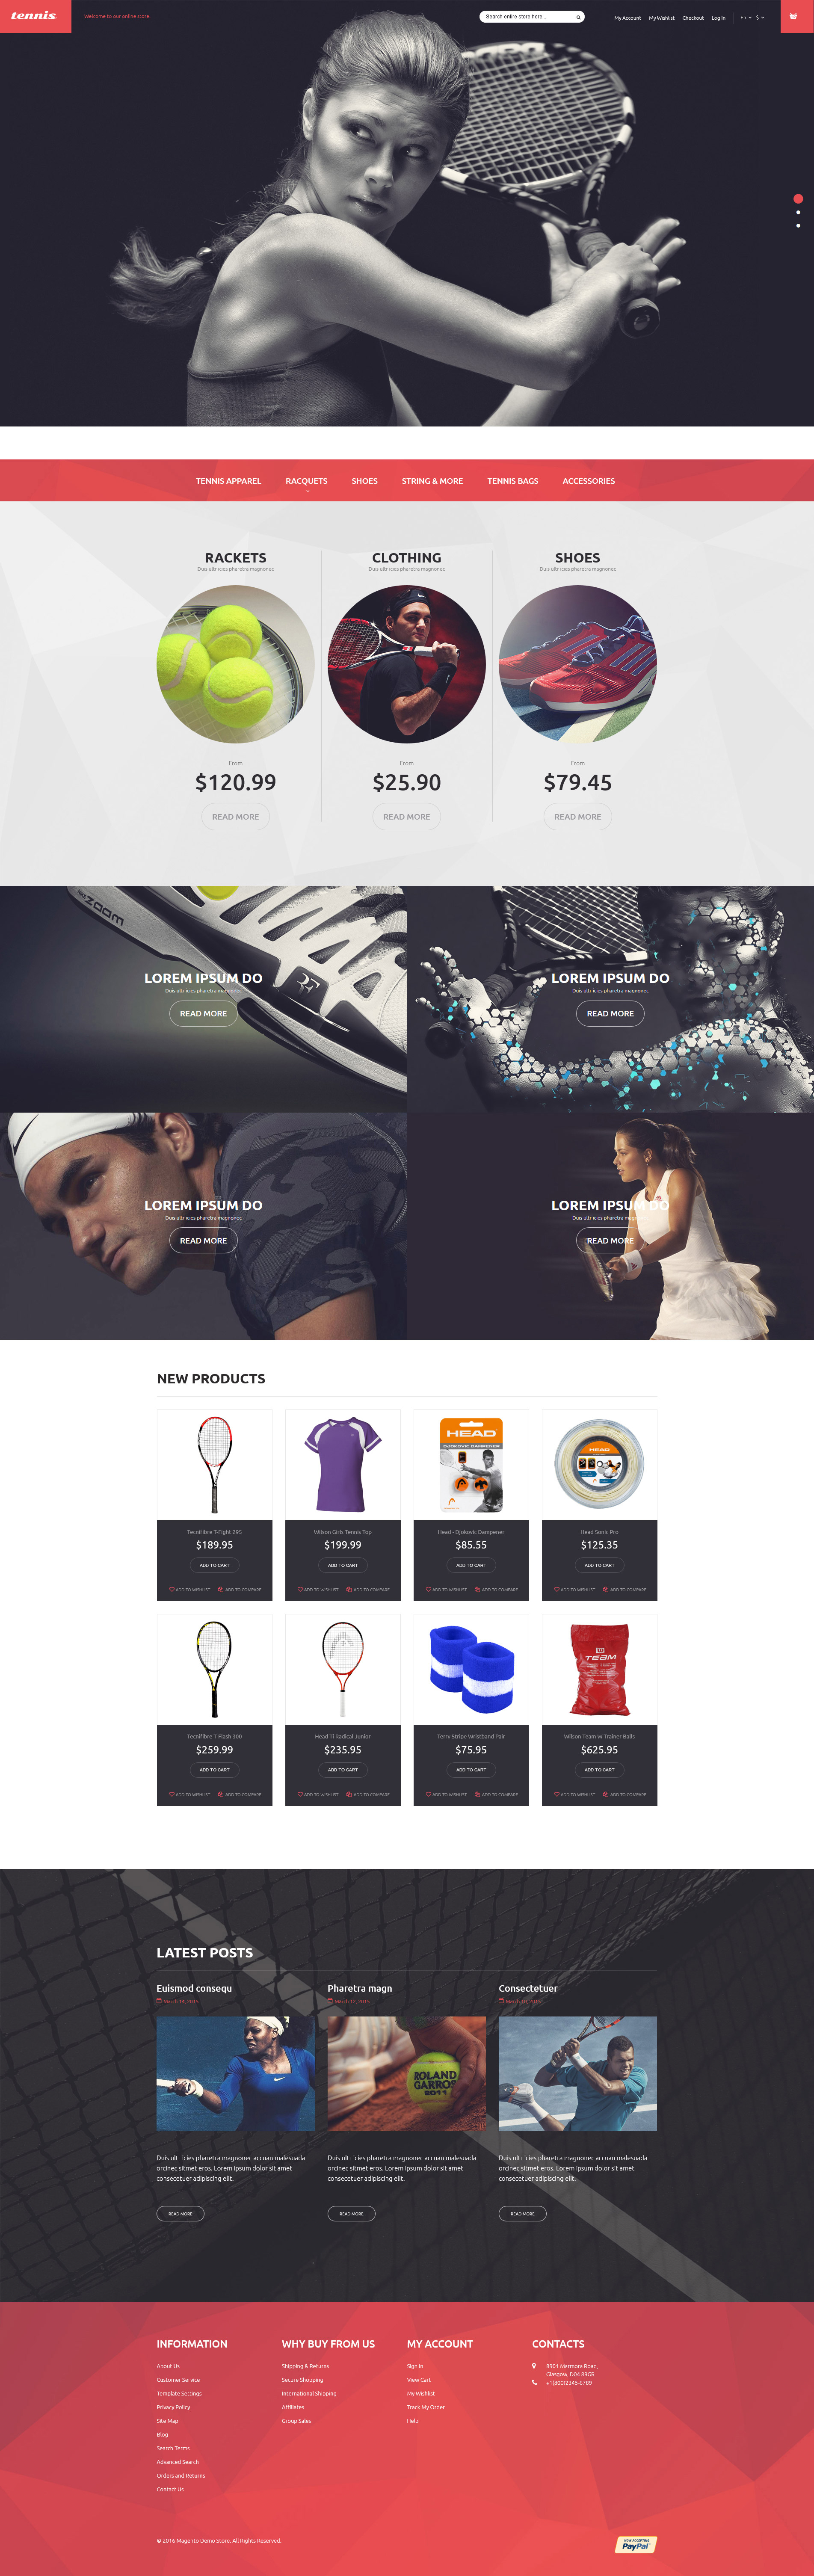 The Tennis Time Store Magento Design 53506, one of the best Magento themes of its kind (sport, most popular), also known as tennis time store Magento template, shoes Magento template, apparel Magento template, string Magento template, bags Magento template, accessories Magento template, sport Magento template, racket Magento template, racquet Magento template, ball Magento template, bags Magento template, strings Magento template, grips and related with tennis time store, shoes, apparel, string, bags, accessories, sport, racket, racquet, ball, bags, strings, grips, etc.